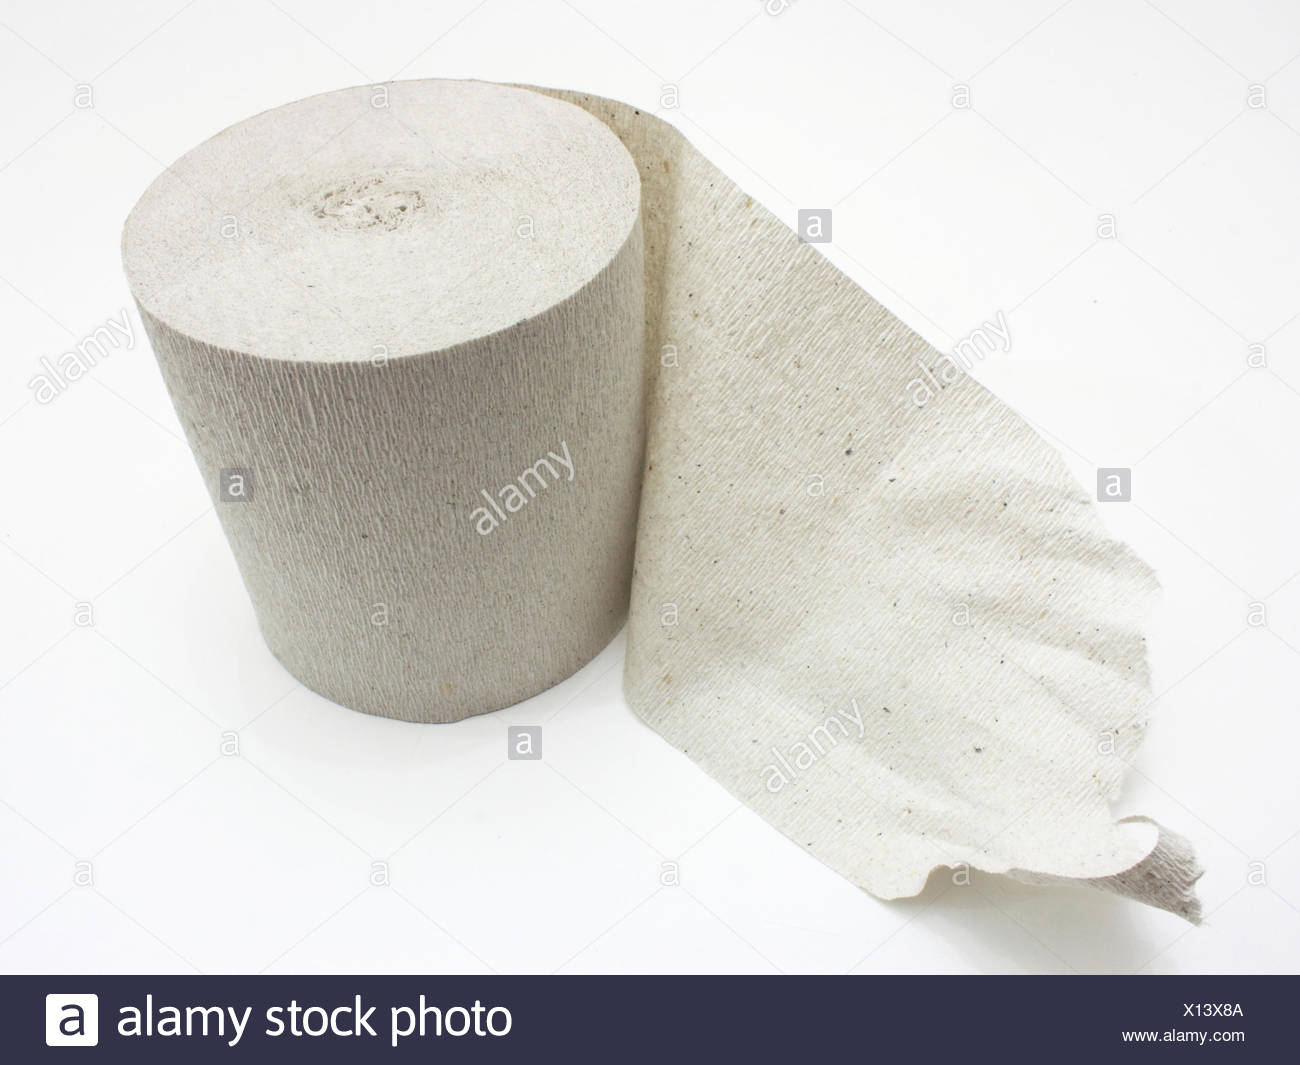 Roll of toilet paper - Stock Image